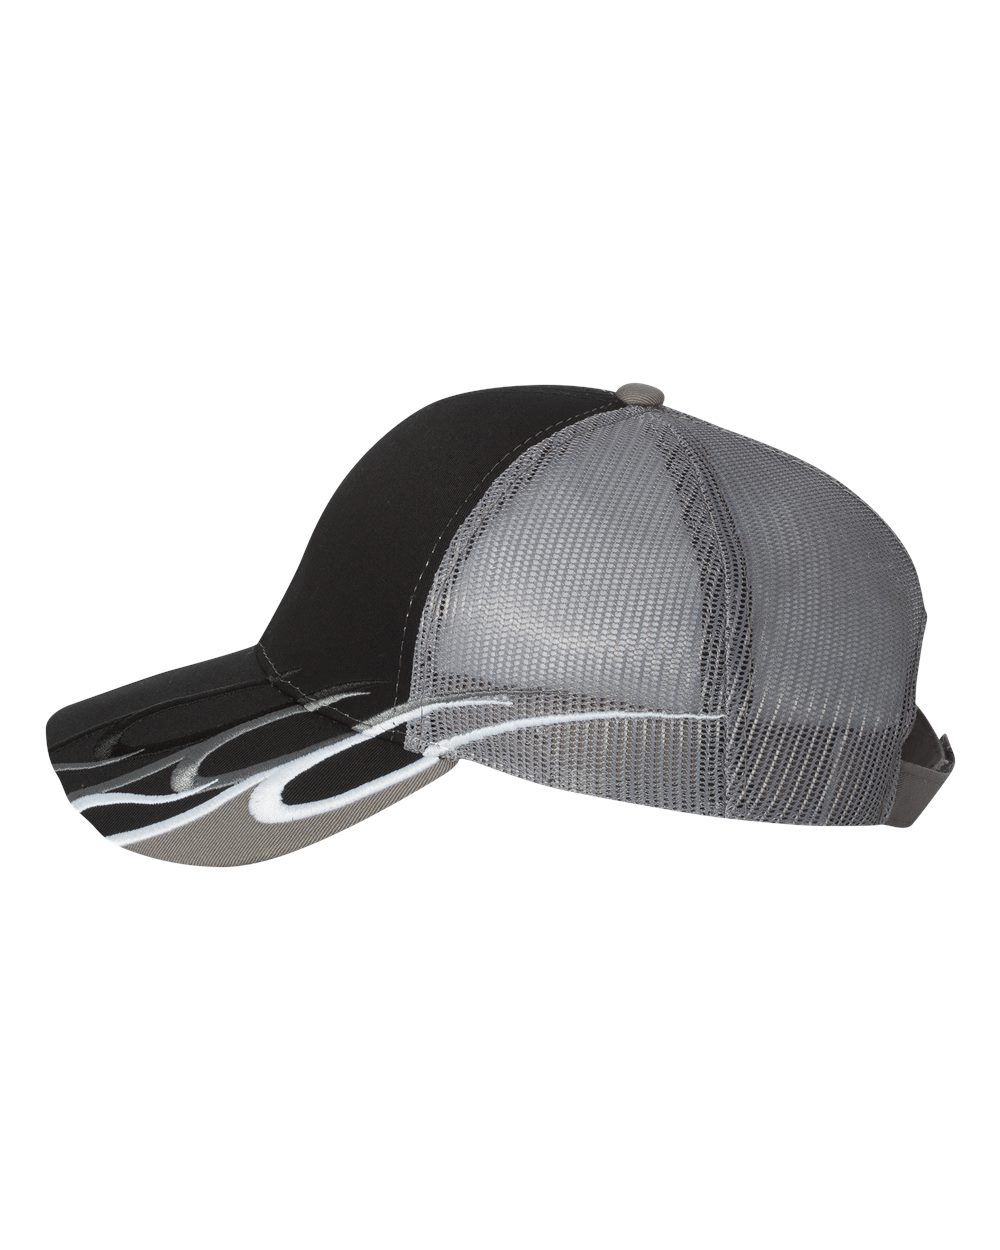 Outdoor Cap WAV605M - Flame Mesh Back Cap